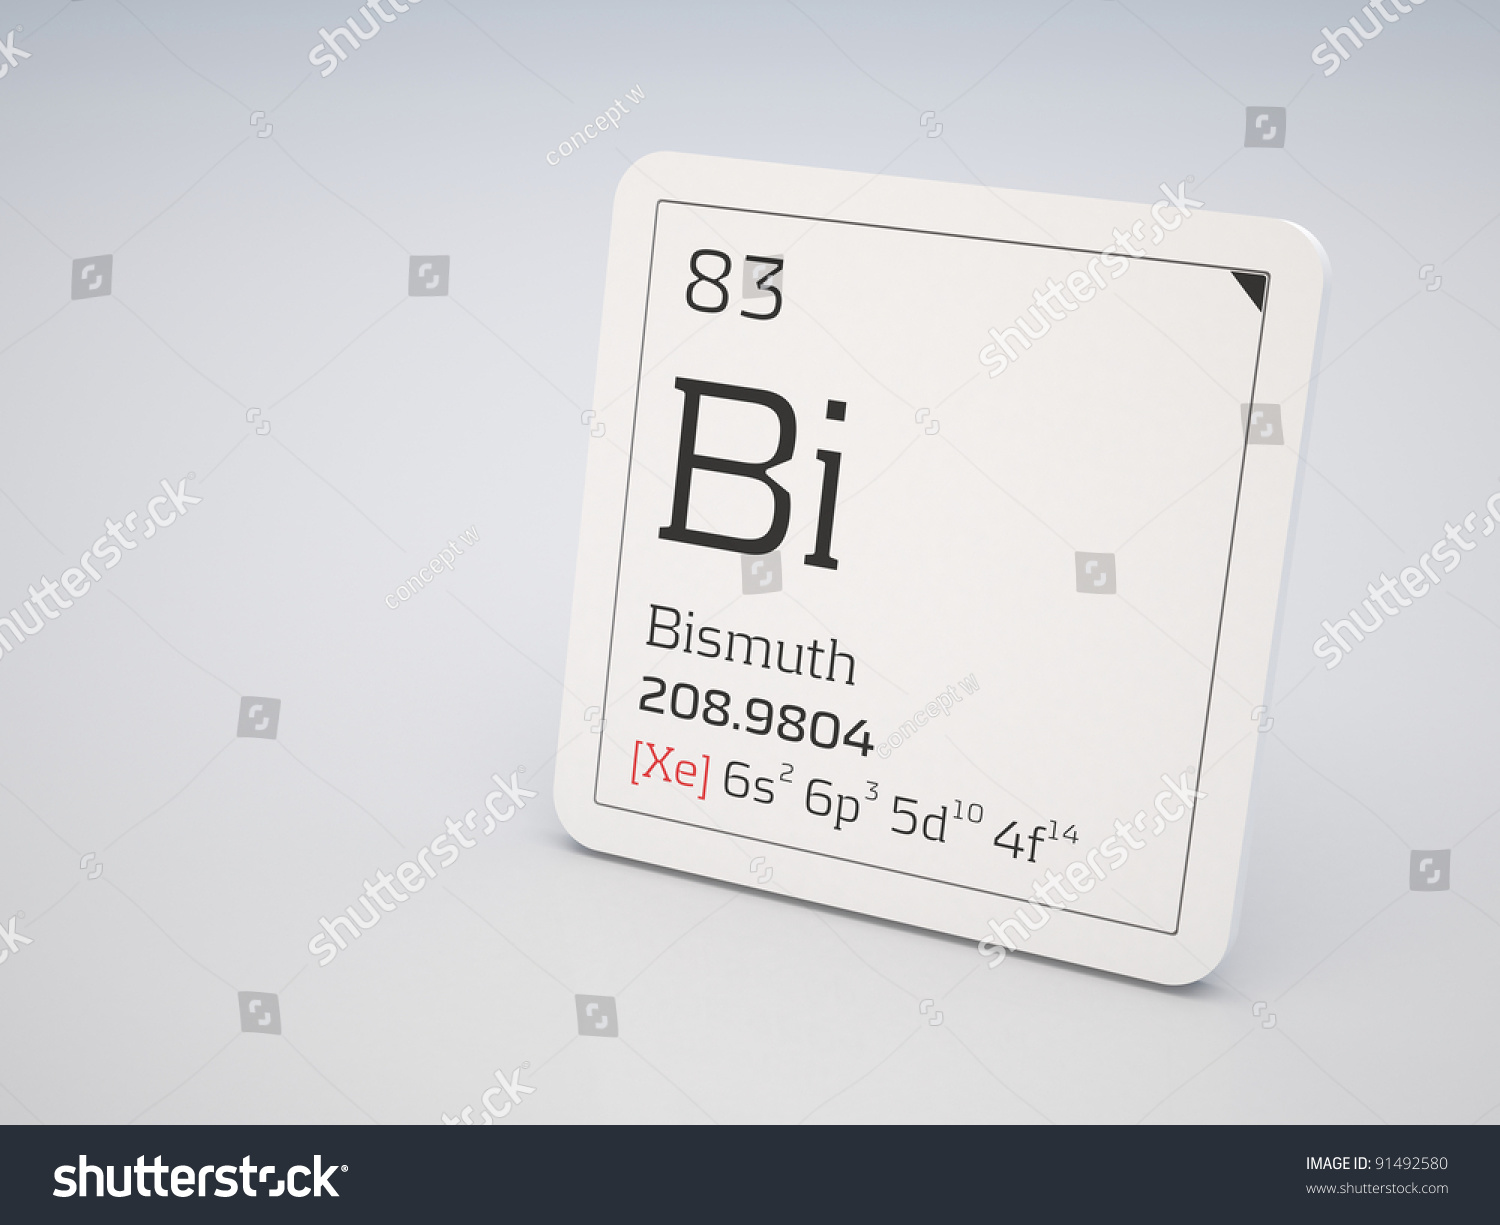 abbreviation lead table periodic bismuth wwwgalleryhipcom the table periodic hippest pics - Periodic Table Abbreviation Lead